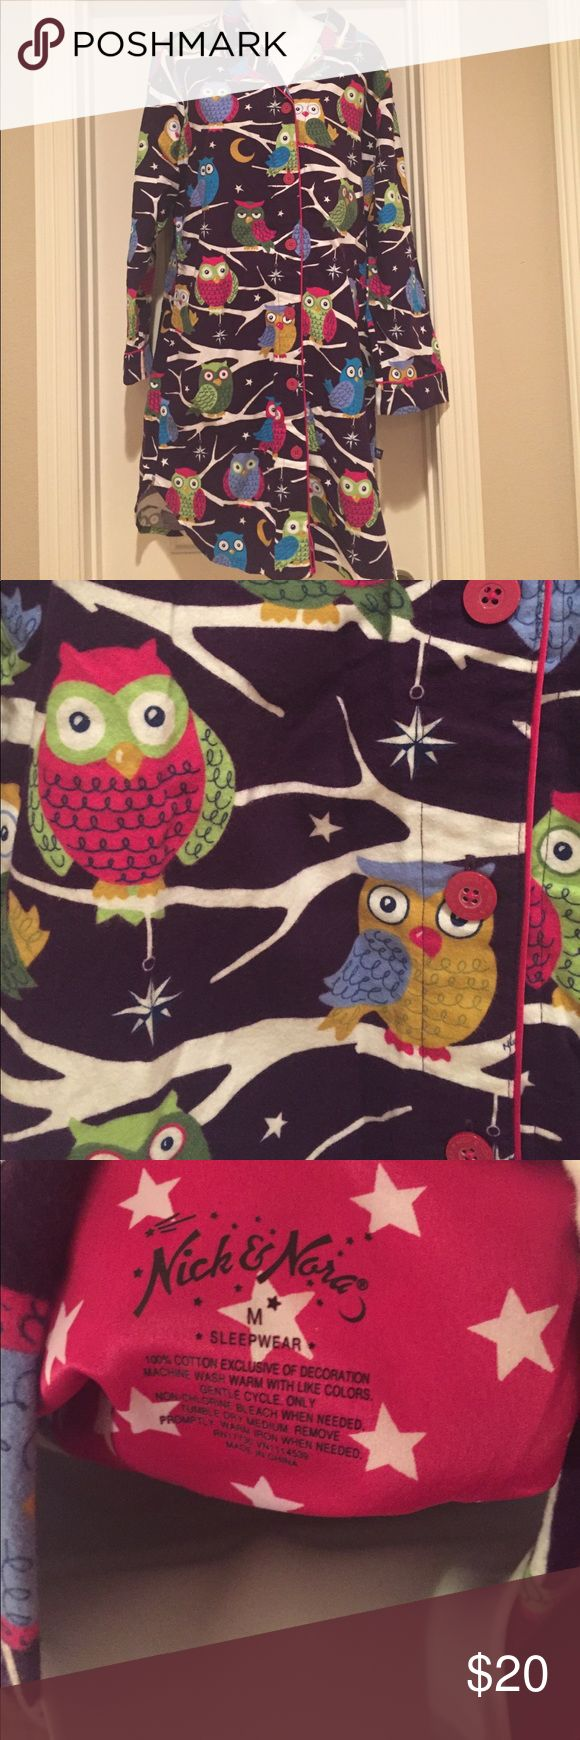 Nick and Nora Flannel Sleep Shirt Vibrant colors, fun owl print. Excellent pre-owned condition. Nick & Nora Intimates & Sleepwear Pajamas